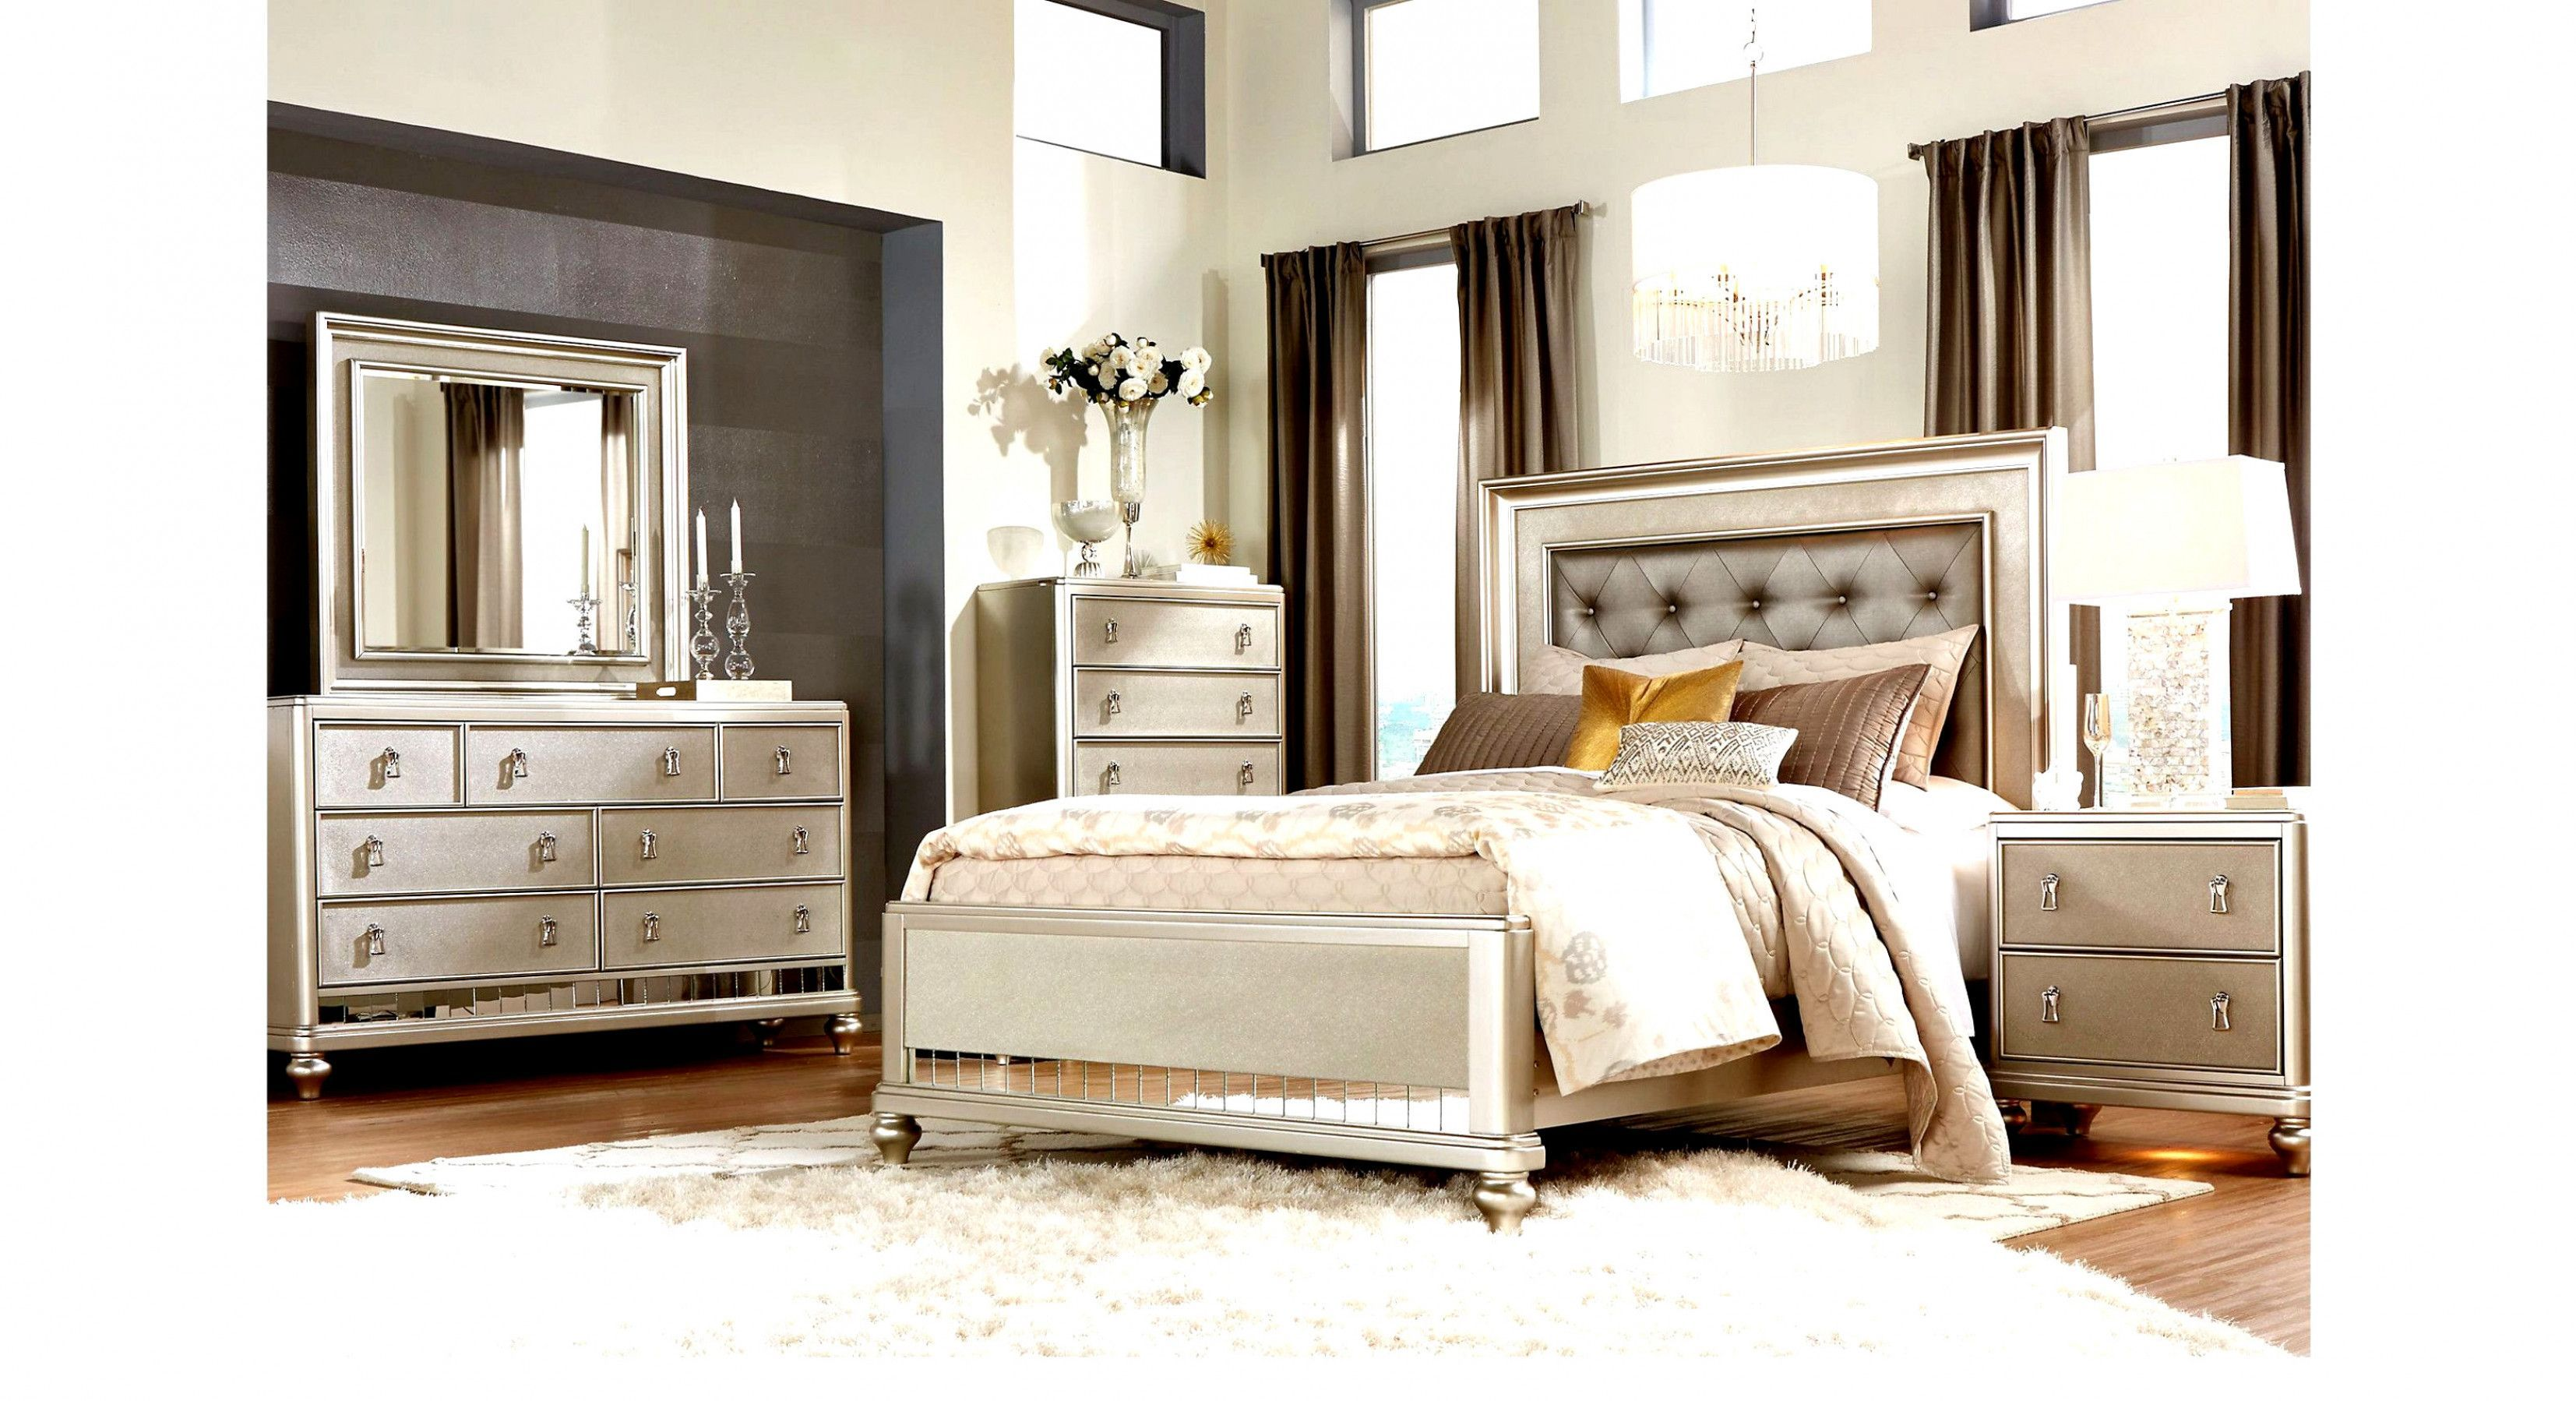 11 Alternatives Rooms To Go Bedroom Sets Should Be Rooms To Go